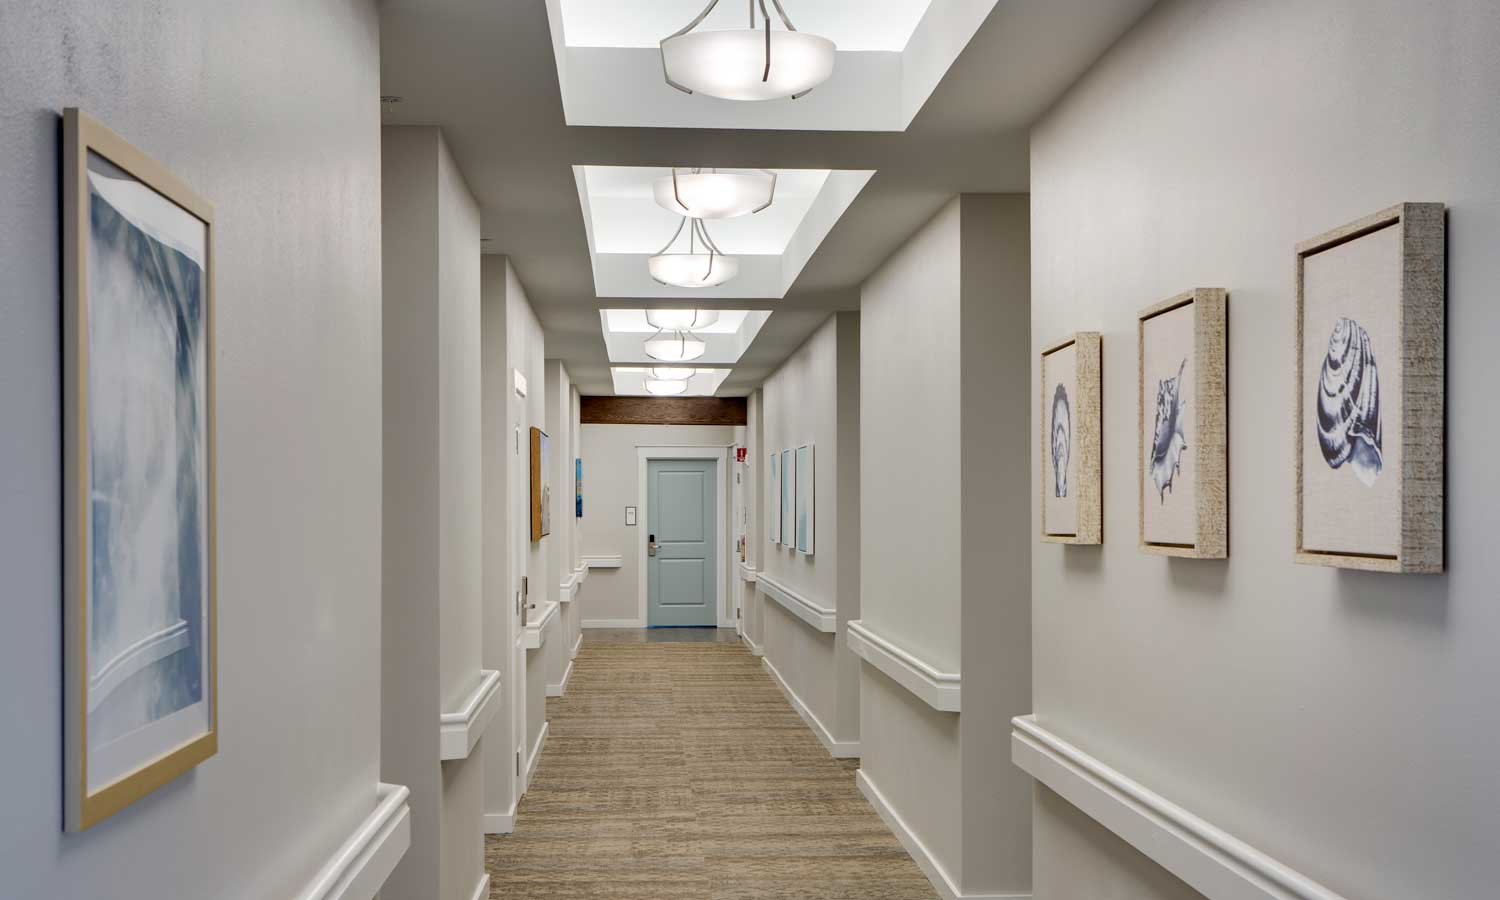 Copy of Assisted Living Corridor